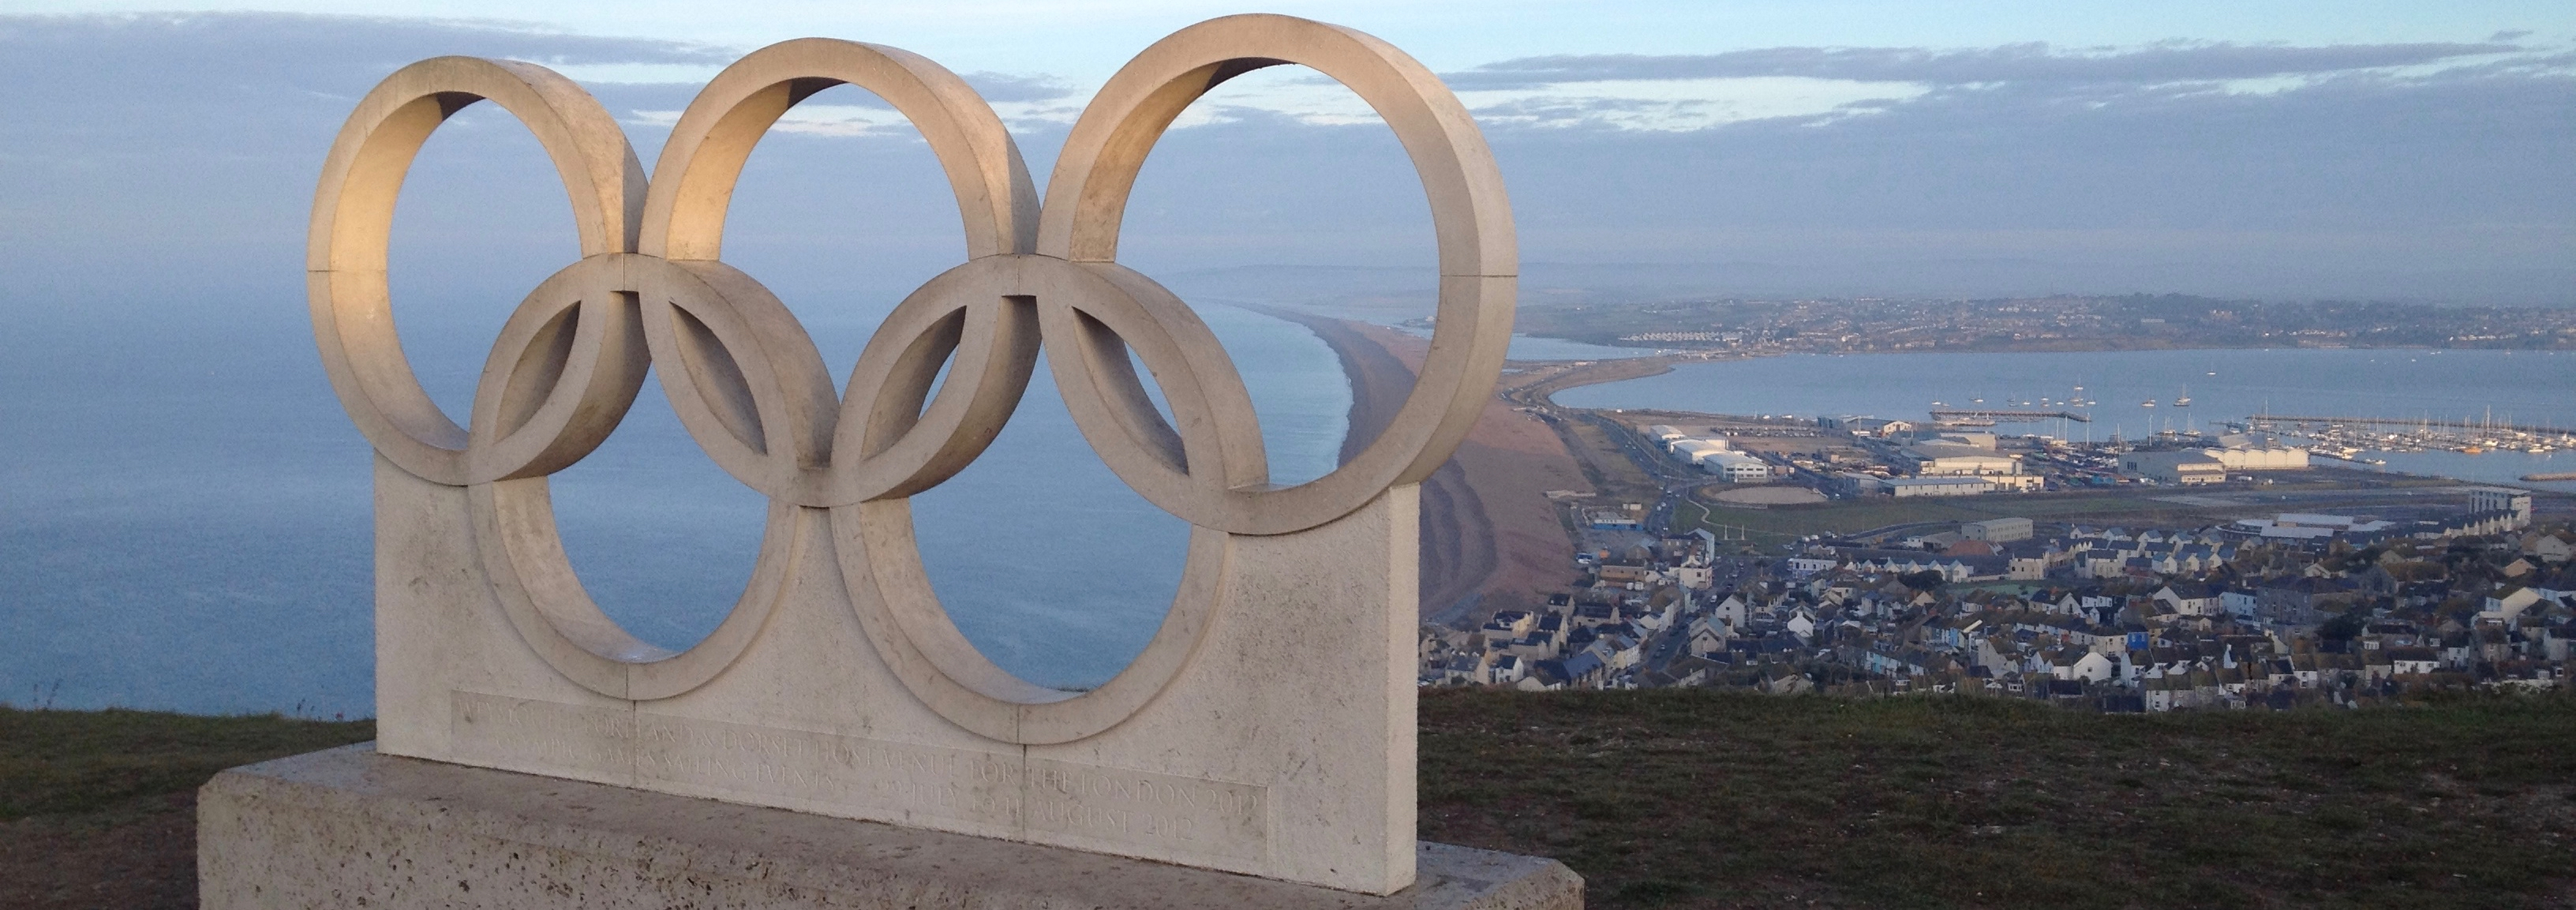 The concrete, interlocking, five Olympic rings high on a hill overlooking Portland